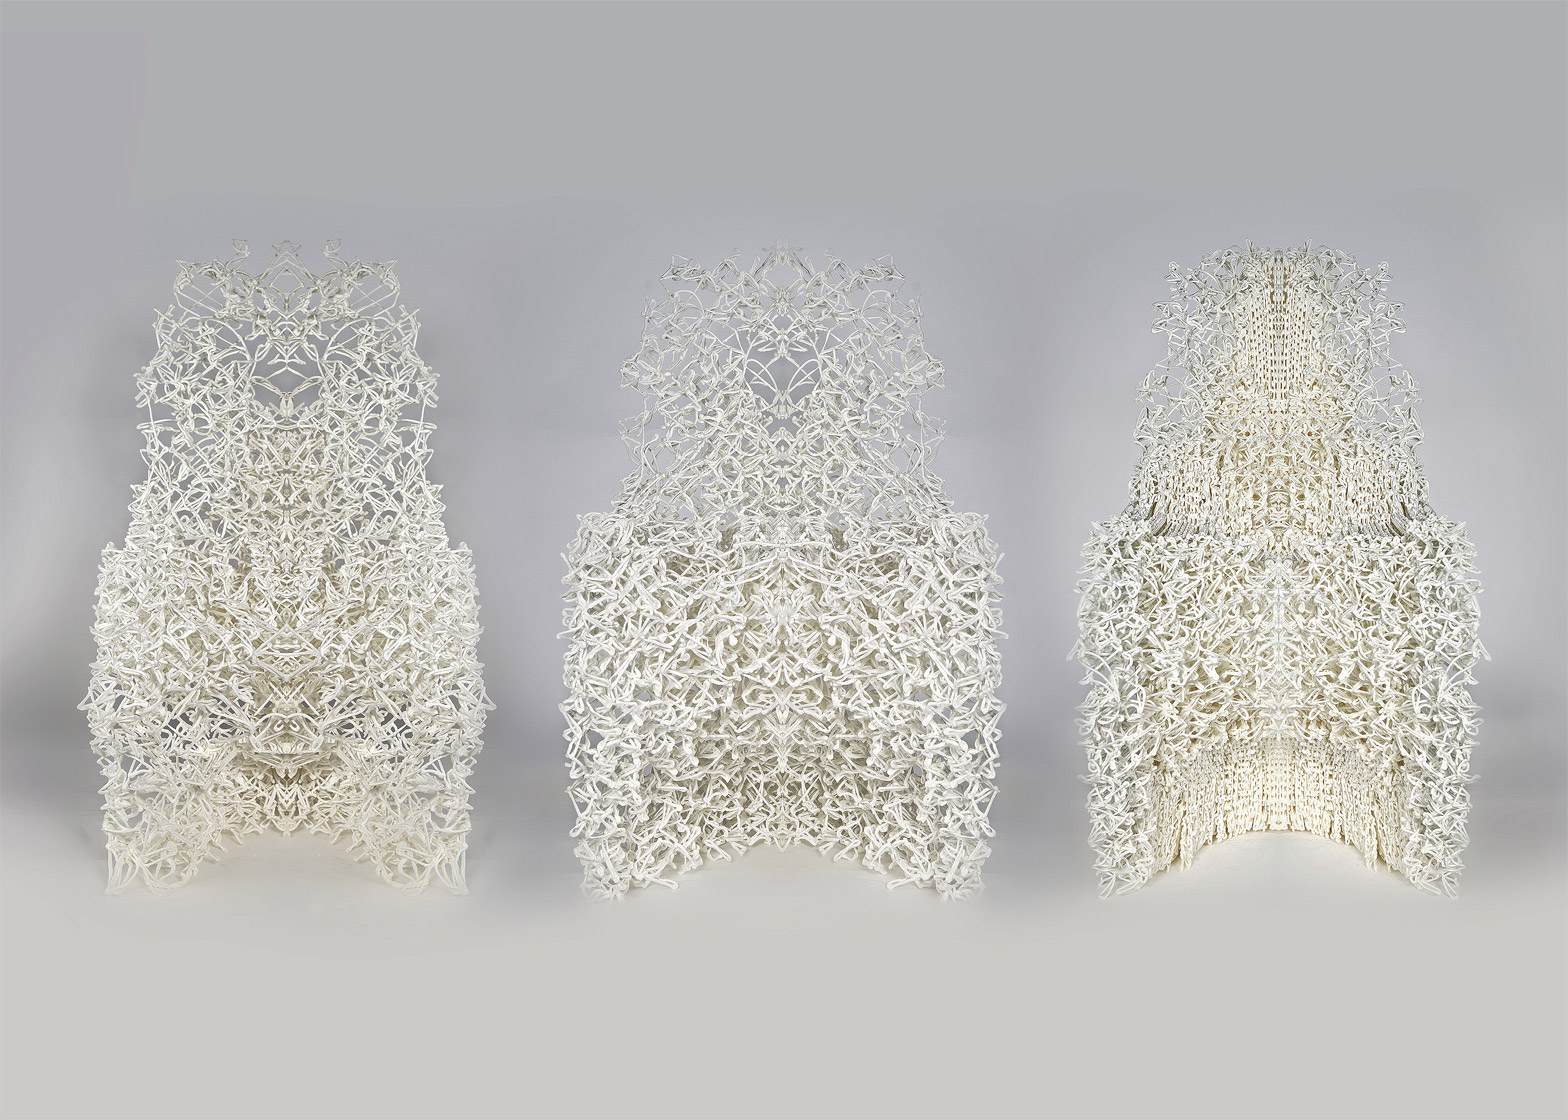 3D-printed chair by The Barlett UCL students